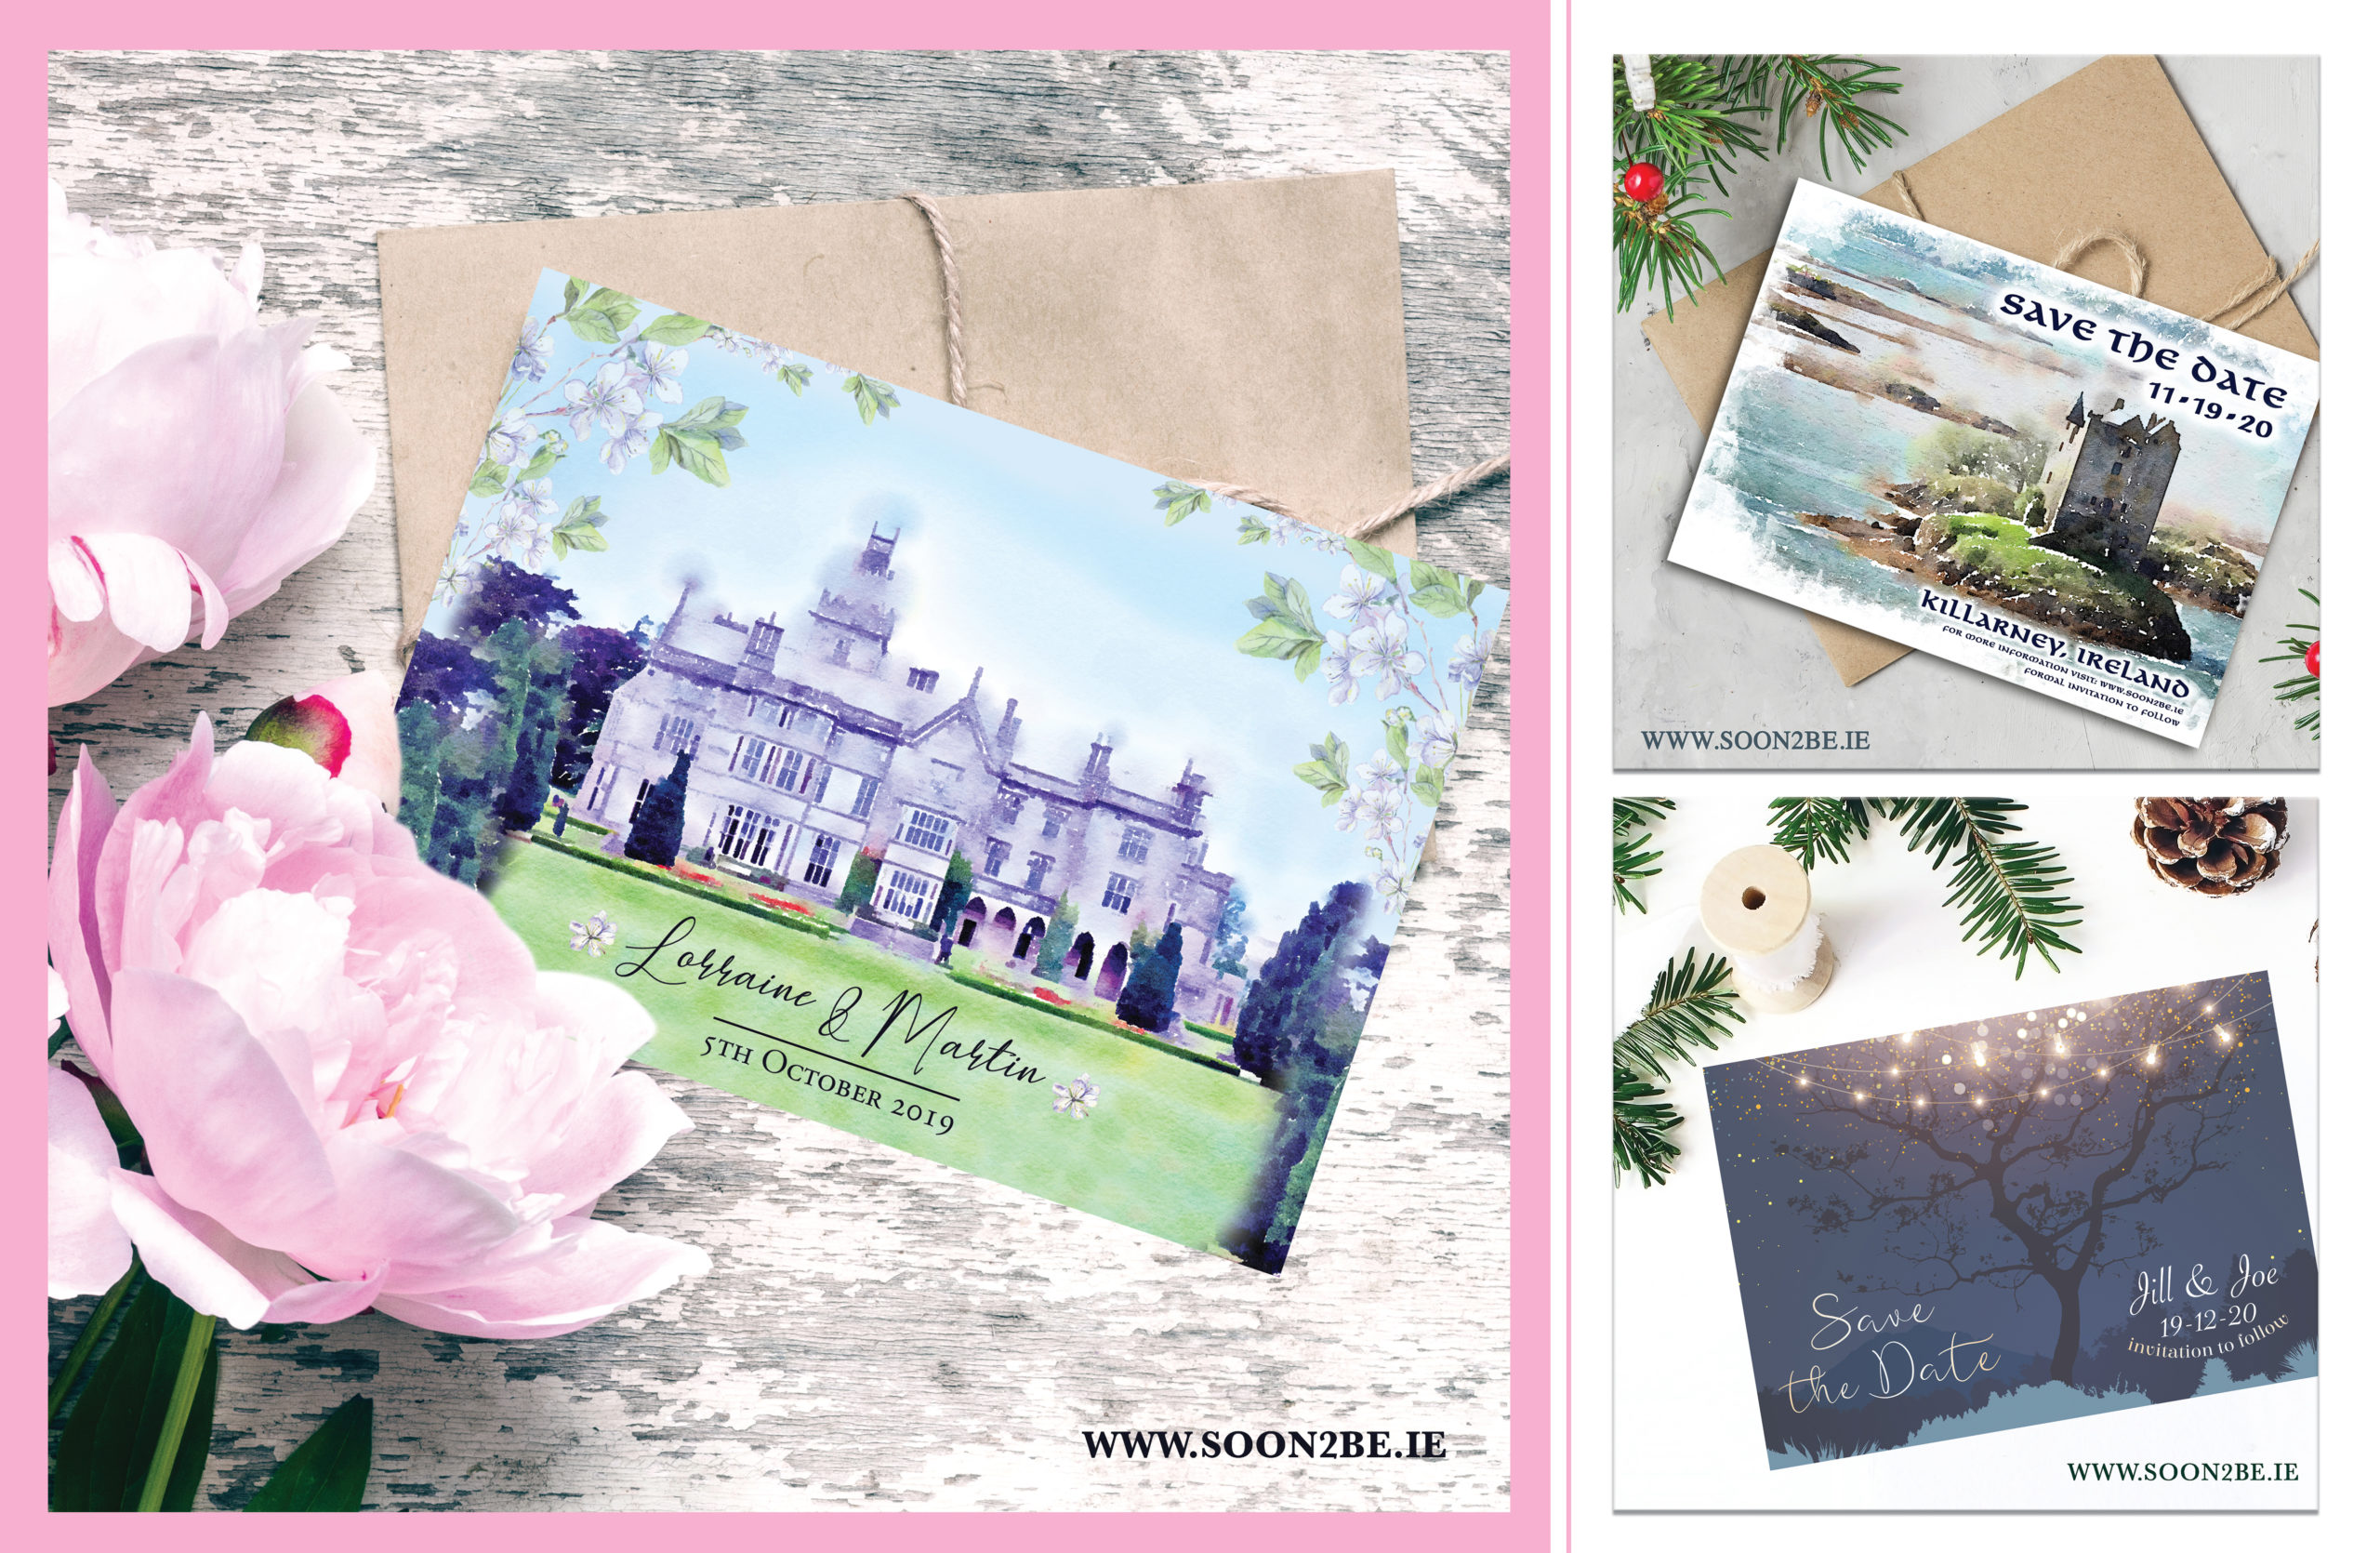 bespoke, invitation, wedding, invite, watercolour, venue invitation, castle invitation,